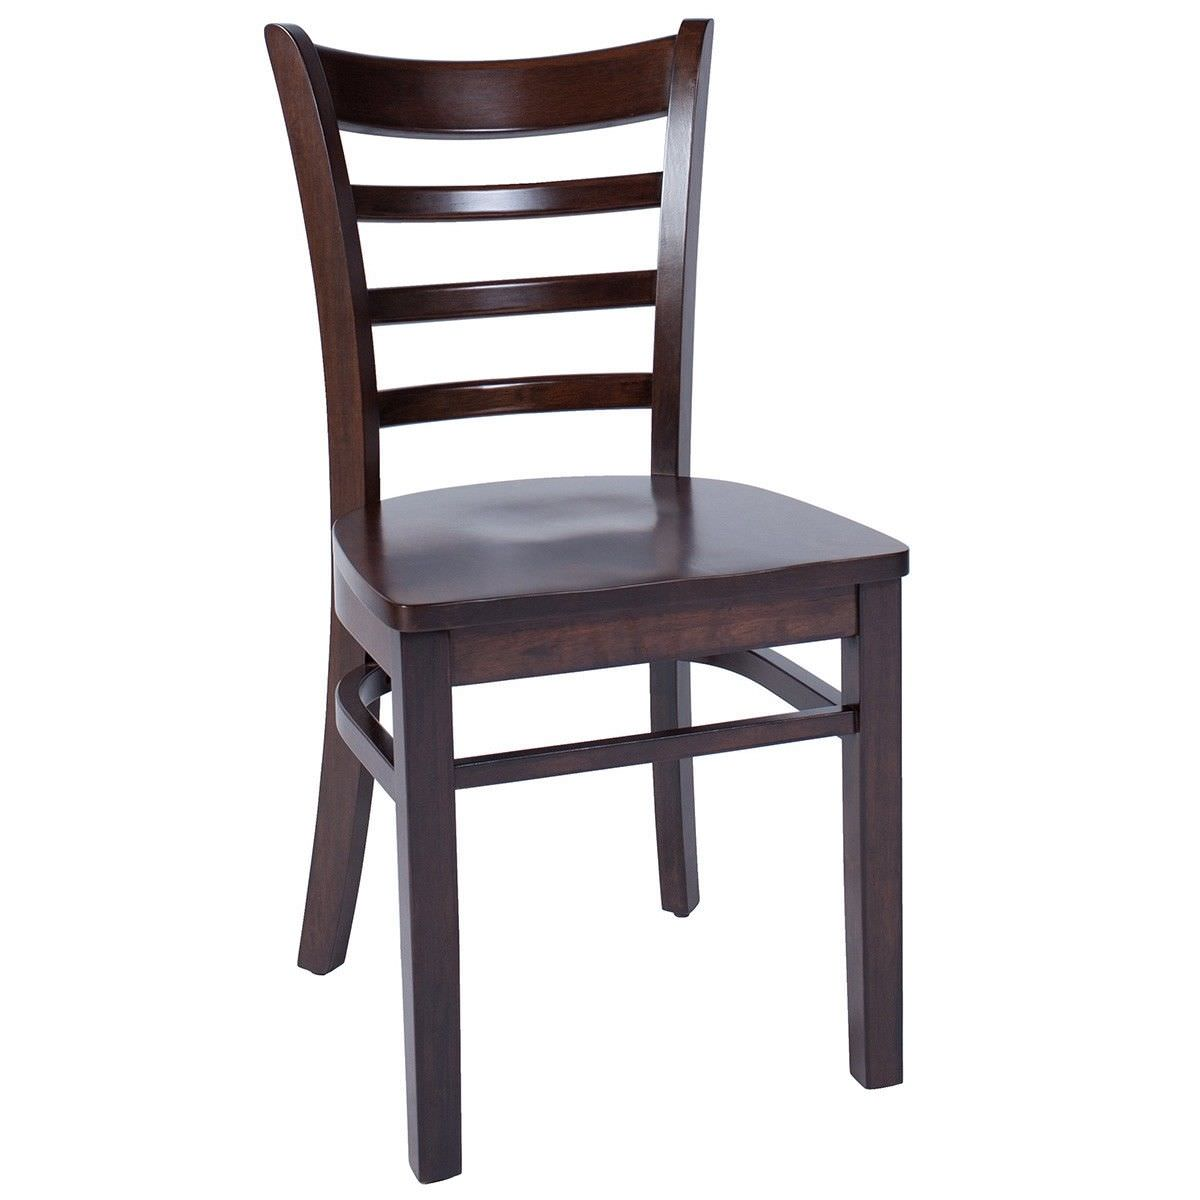 Mustang Commercial Grade Timber Chair - Walnut